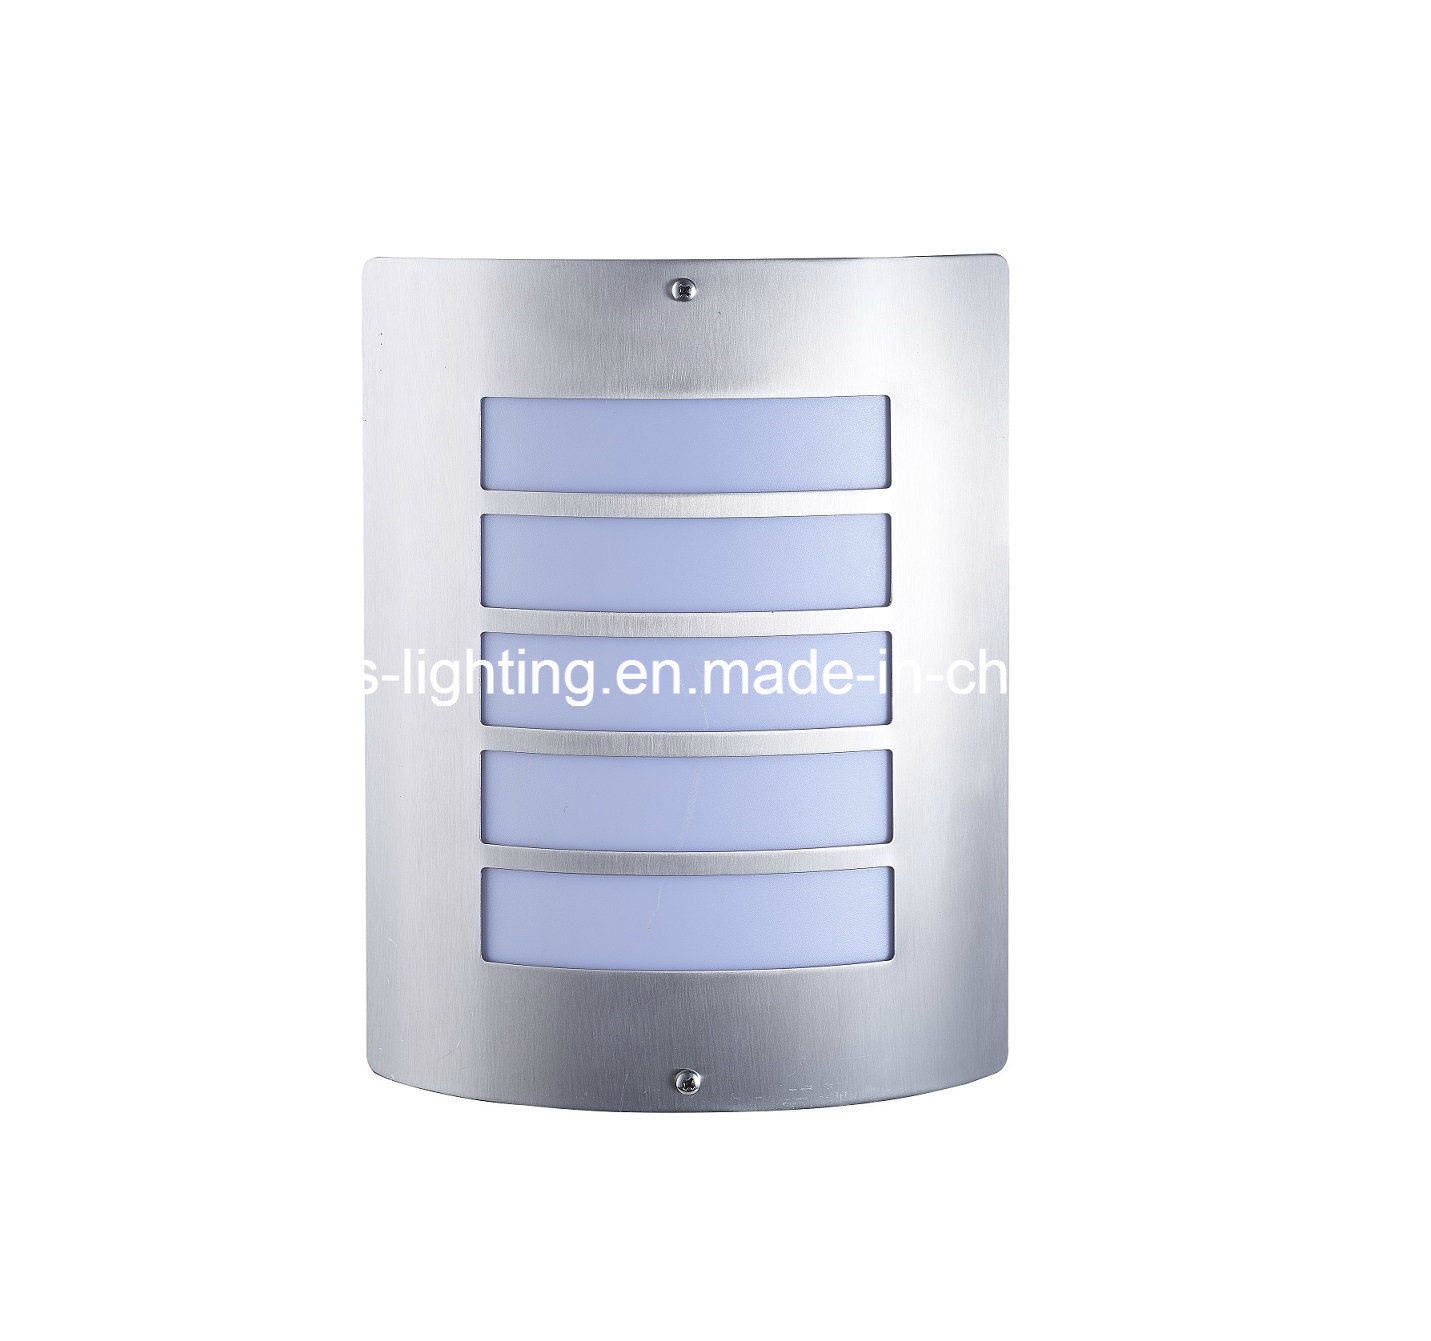 Square Shade Stainless Steel Outdoor Light with Ce Certificate (LH031B2)